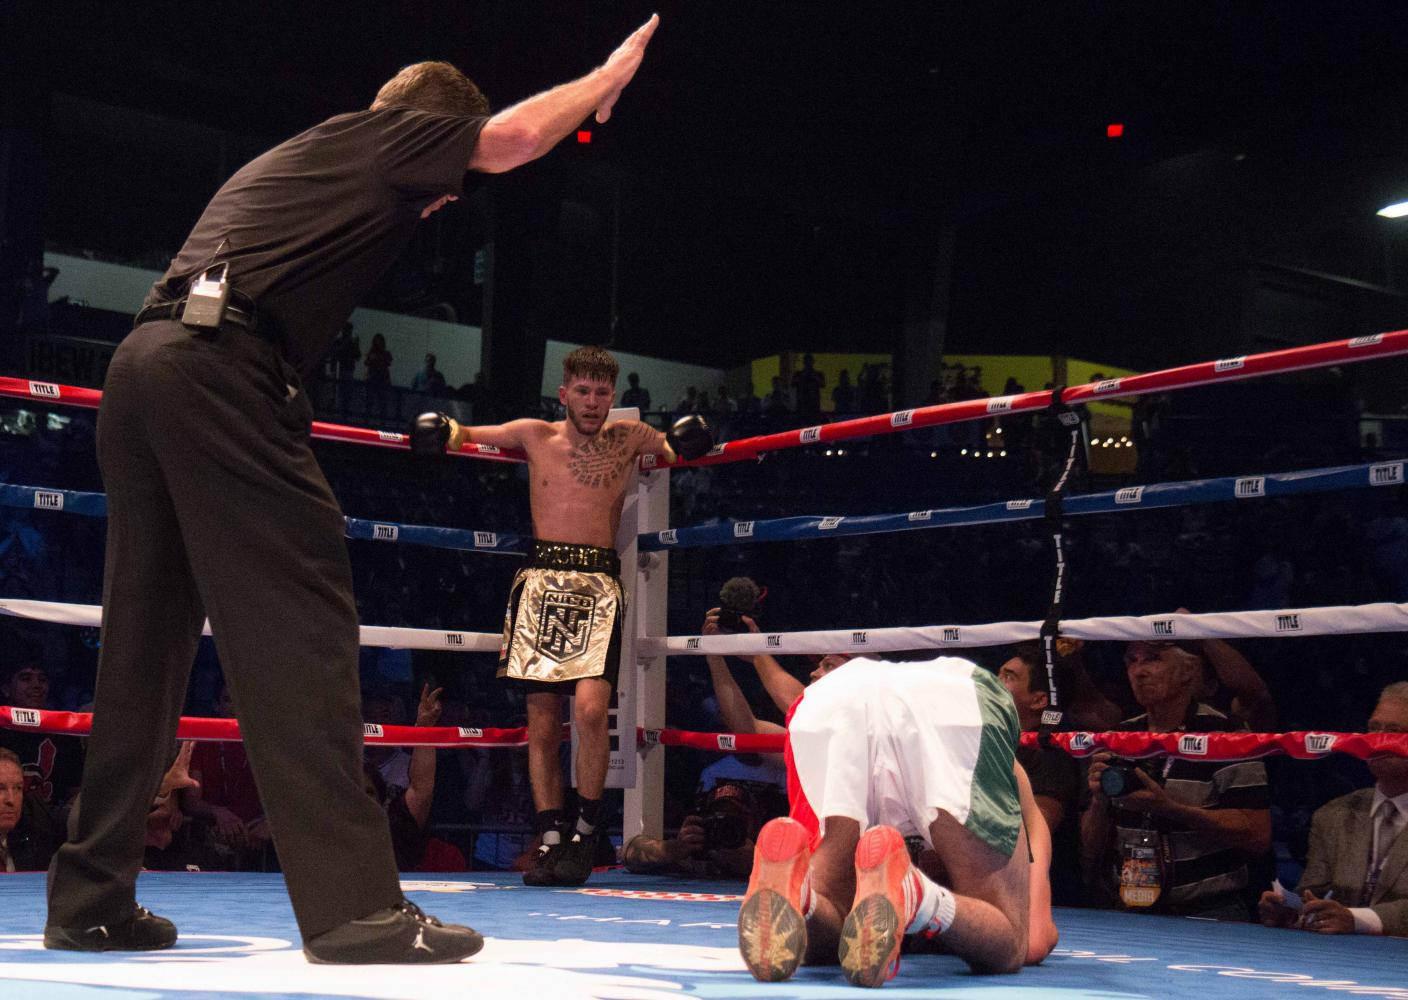 The referee counts off the seconds as Jose Rodriguez remains on the ground in the third round. Nico Hernandez won the Flyweight event by knockout at the KO Night Boxing held at Harman Arena in Park City. (June 17, 2017)